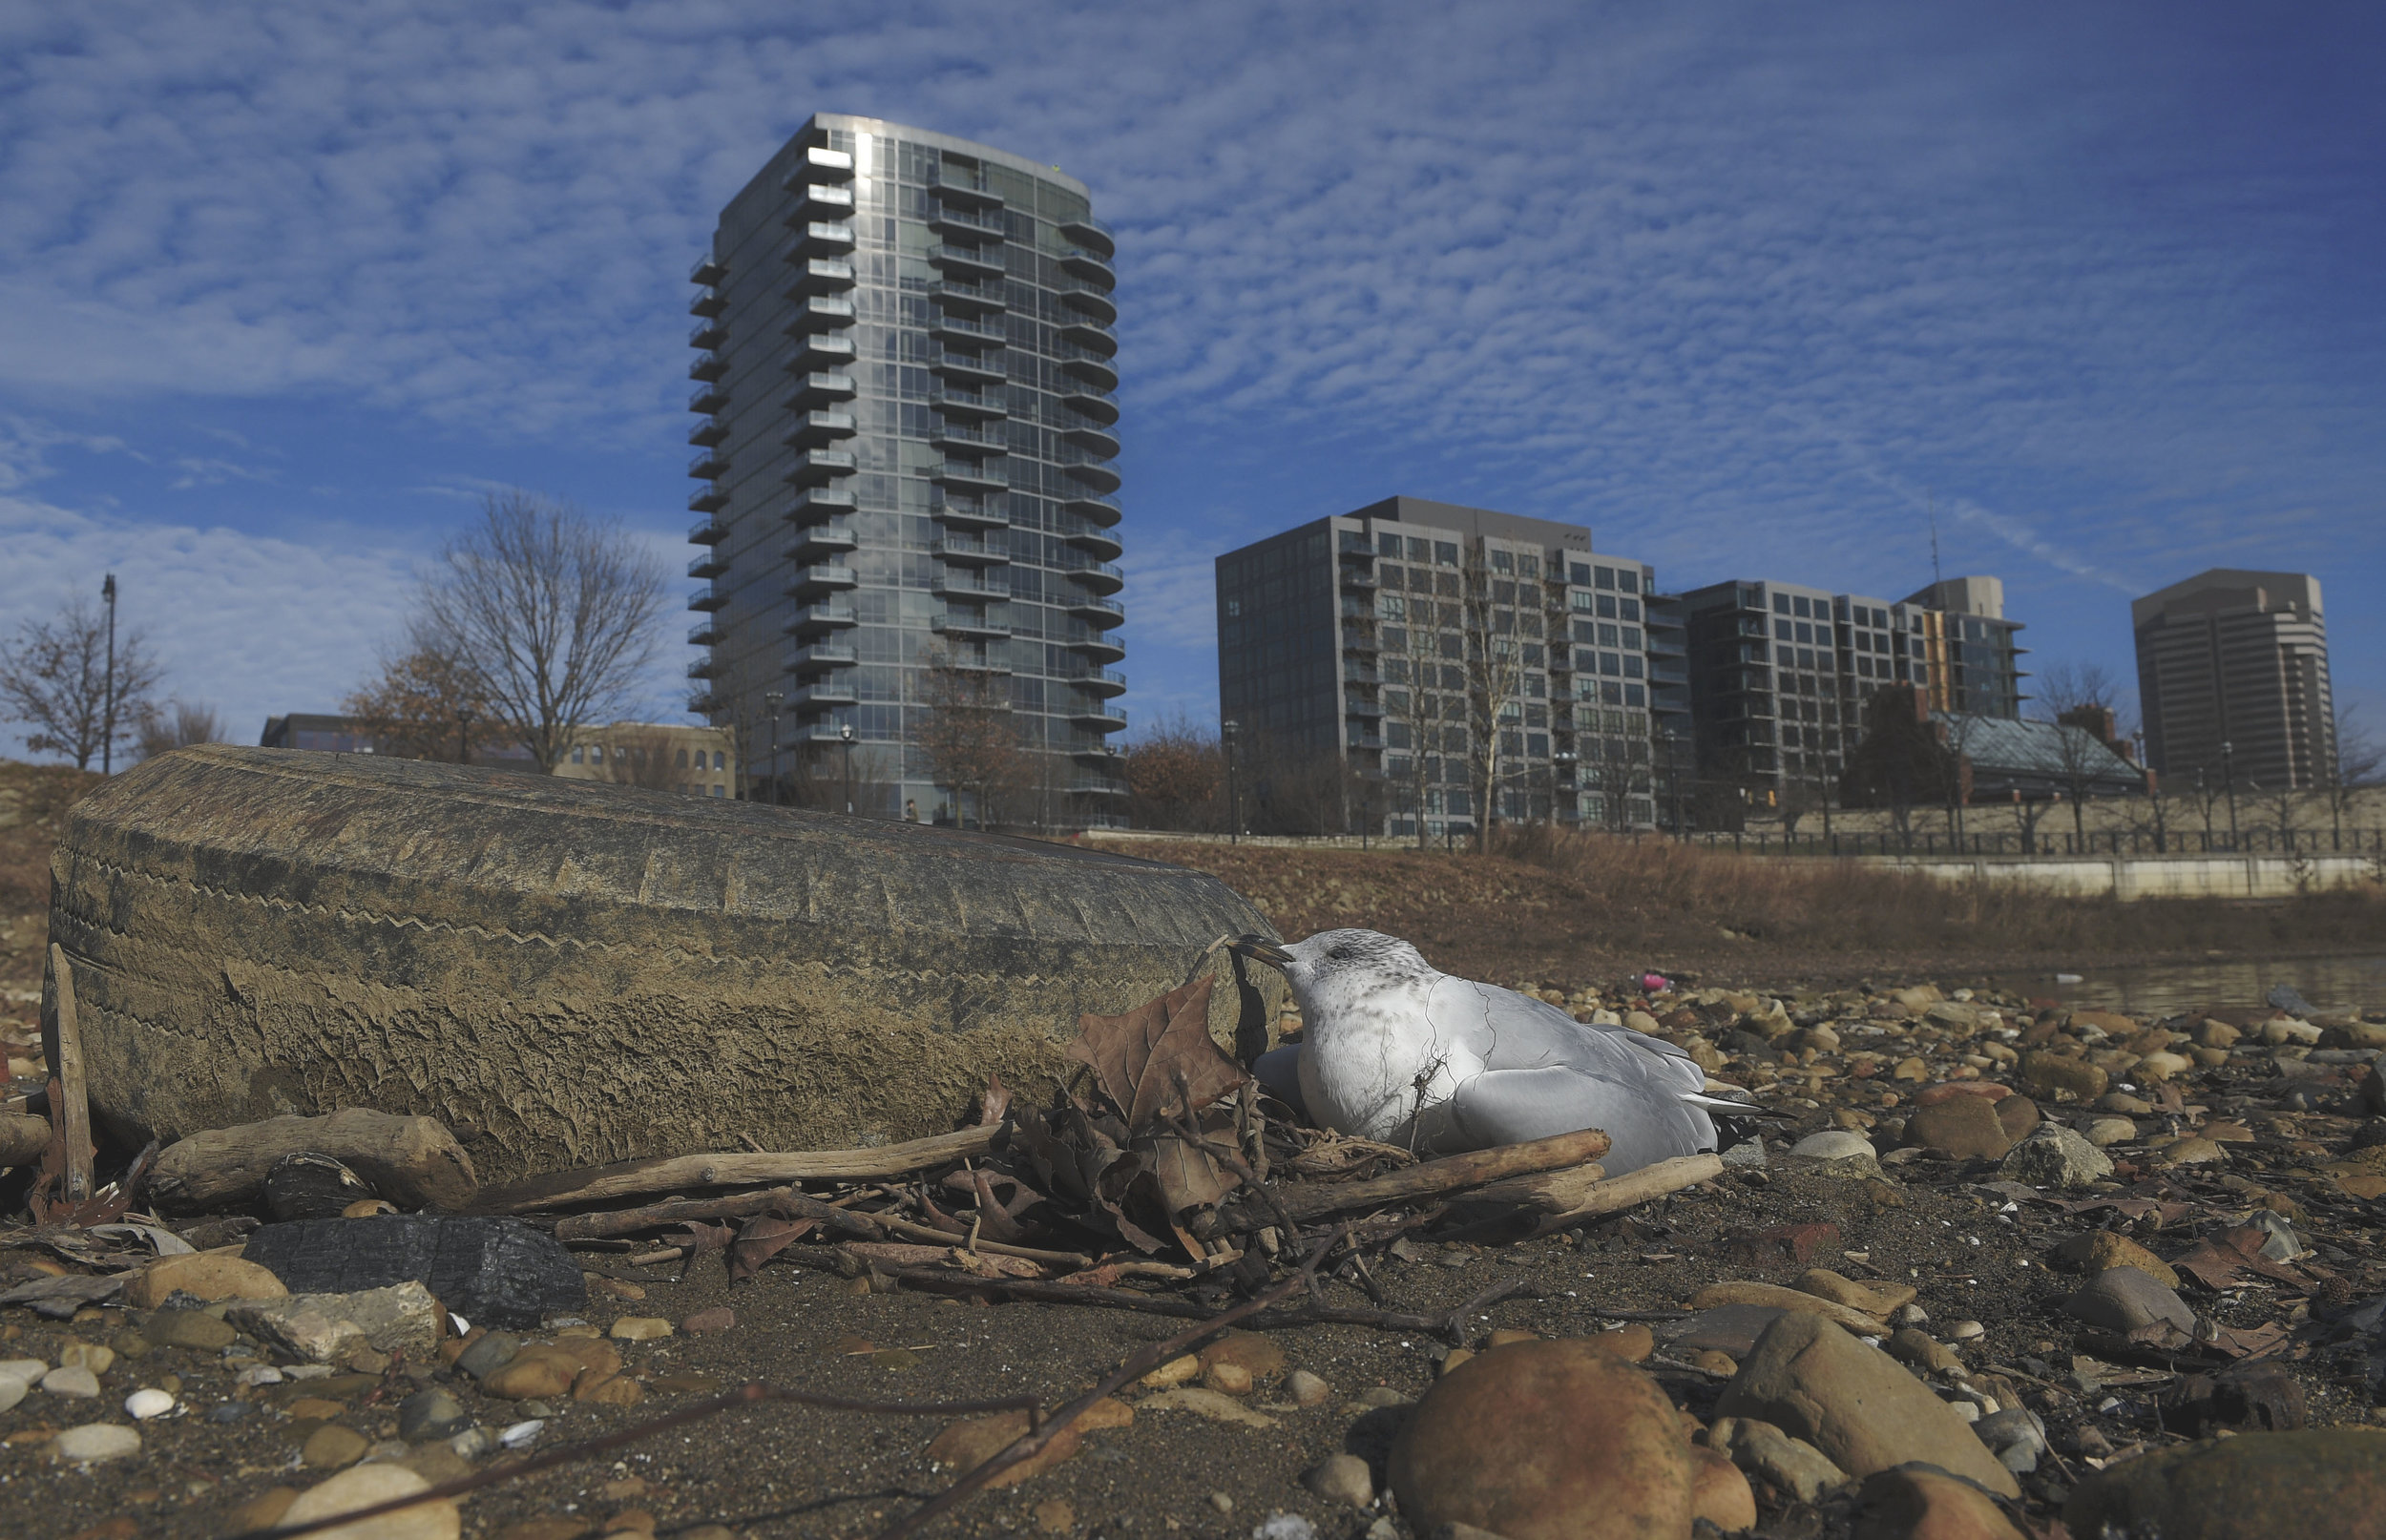 The corpse of gull lay next to a discarded tire on the east bank of the Scioto River 20 yards from a sewage runoff that drains into the Scioto River near newly built high rise apartments.